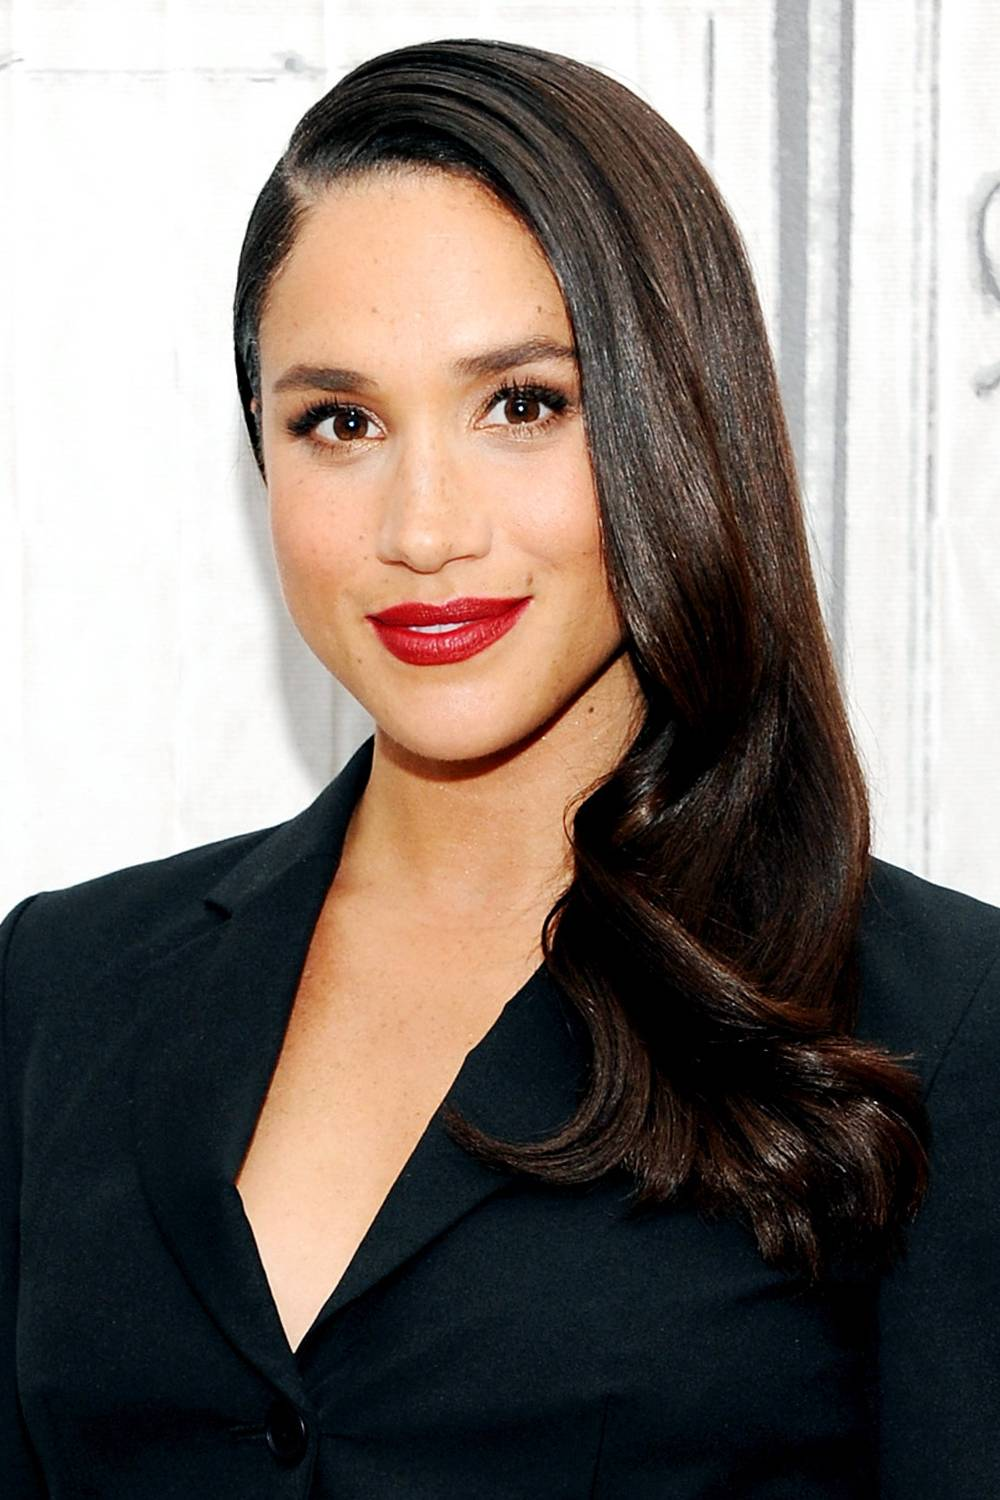 hair-styles-what-to-wear-christmas-day-dinner-holiday-outfits-winter-meghanmarkle-side-part-sleek-red-lips.jpg